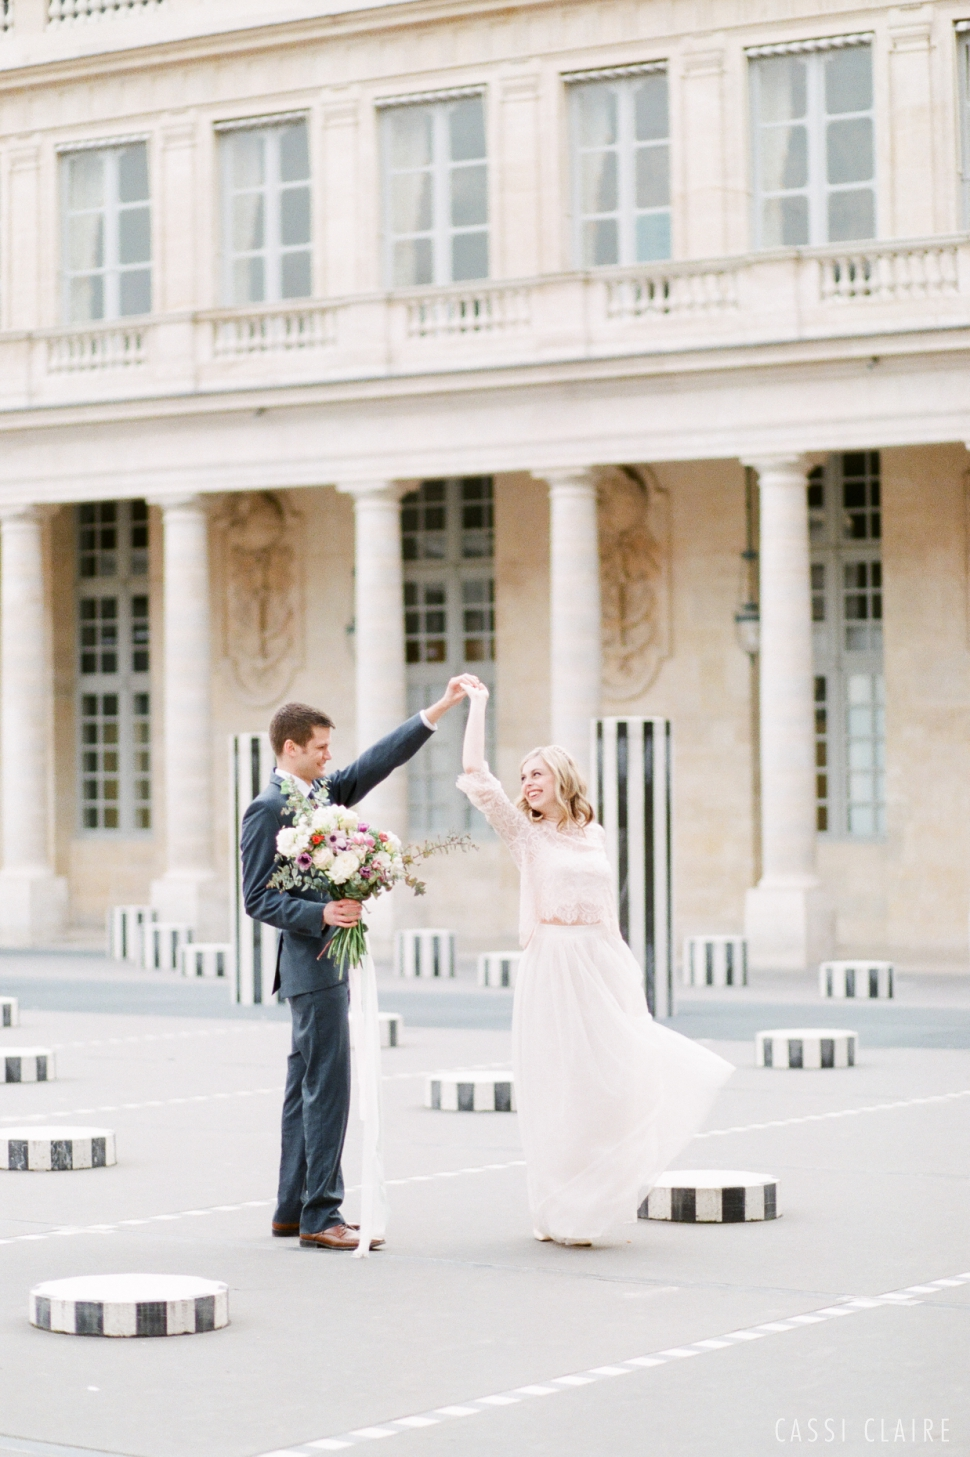 Paris-France-Wedding_CassiClaire_45.jpg